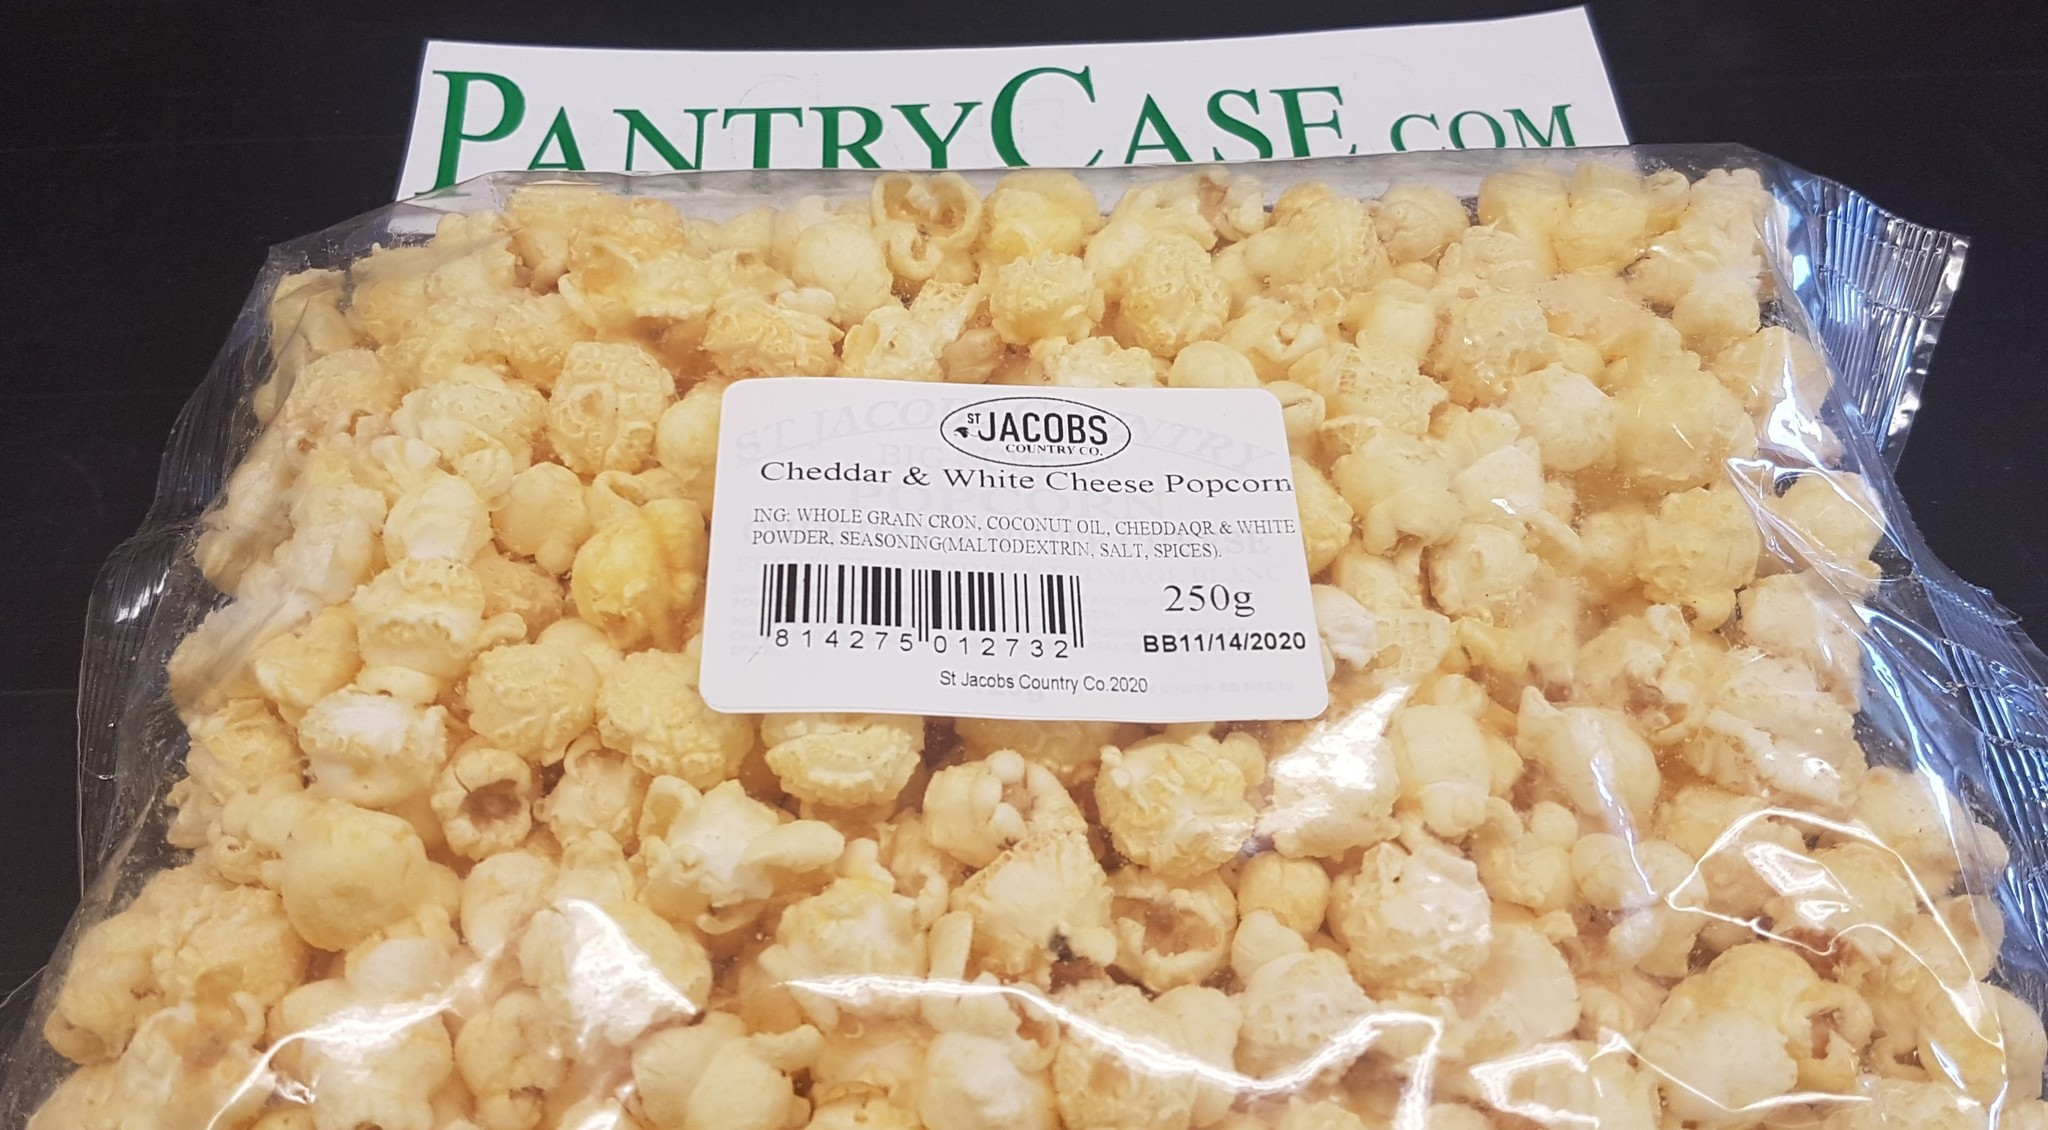 St Jacobs Country Cheddar & White Cheese Popcorn x250g